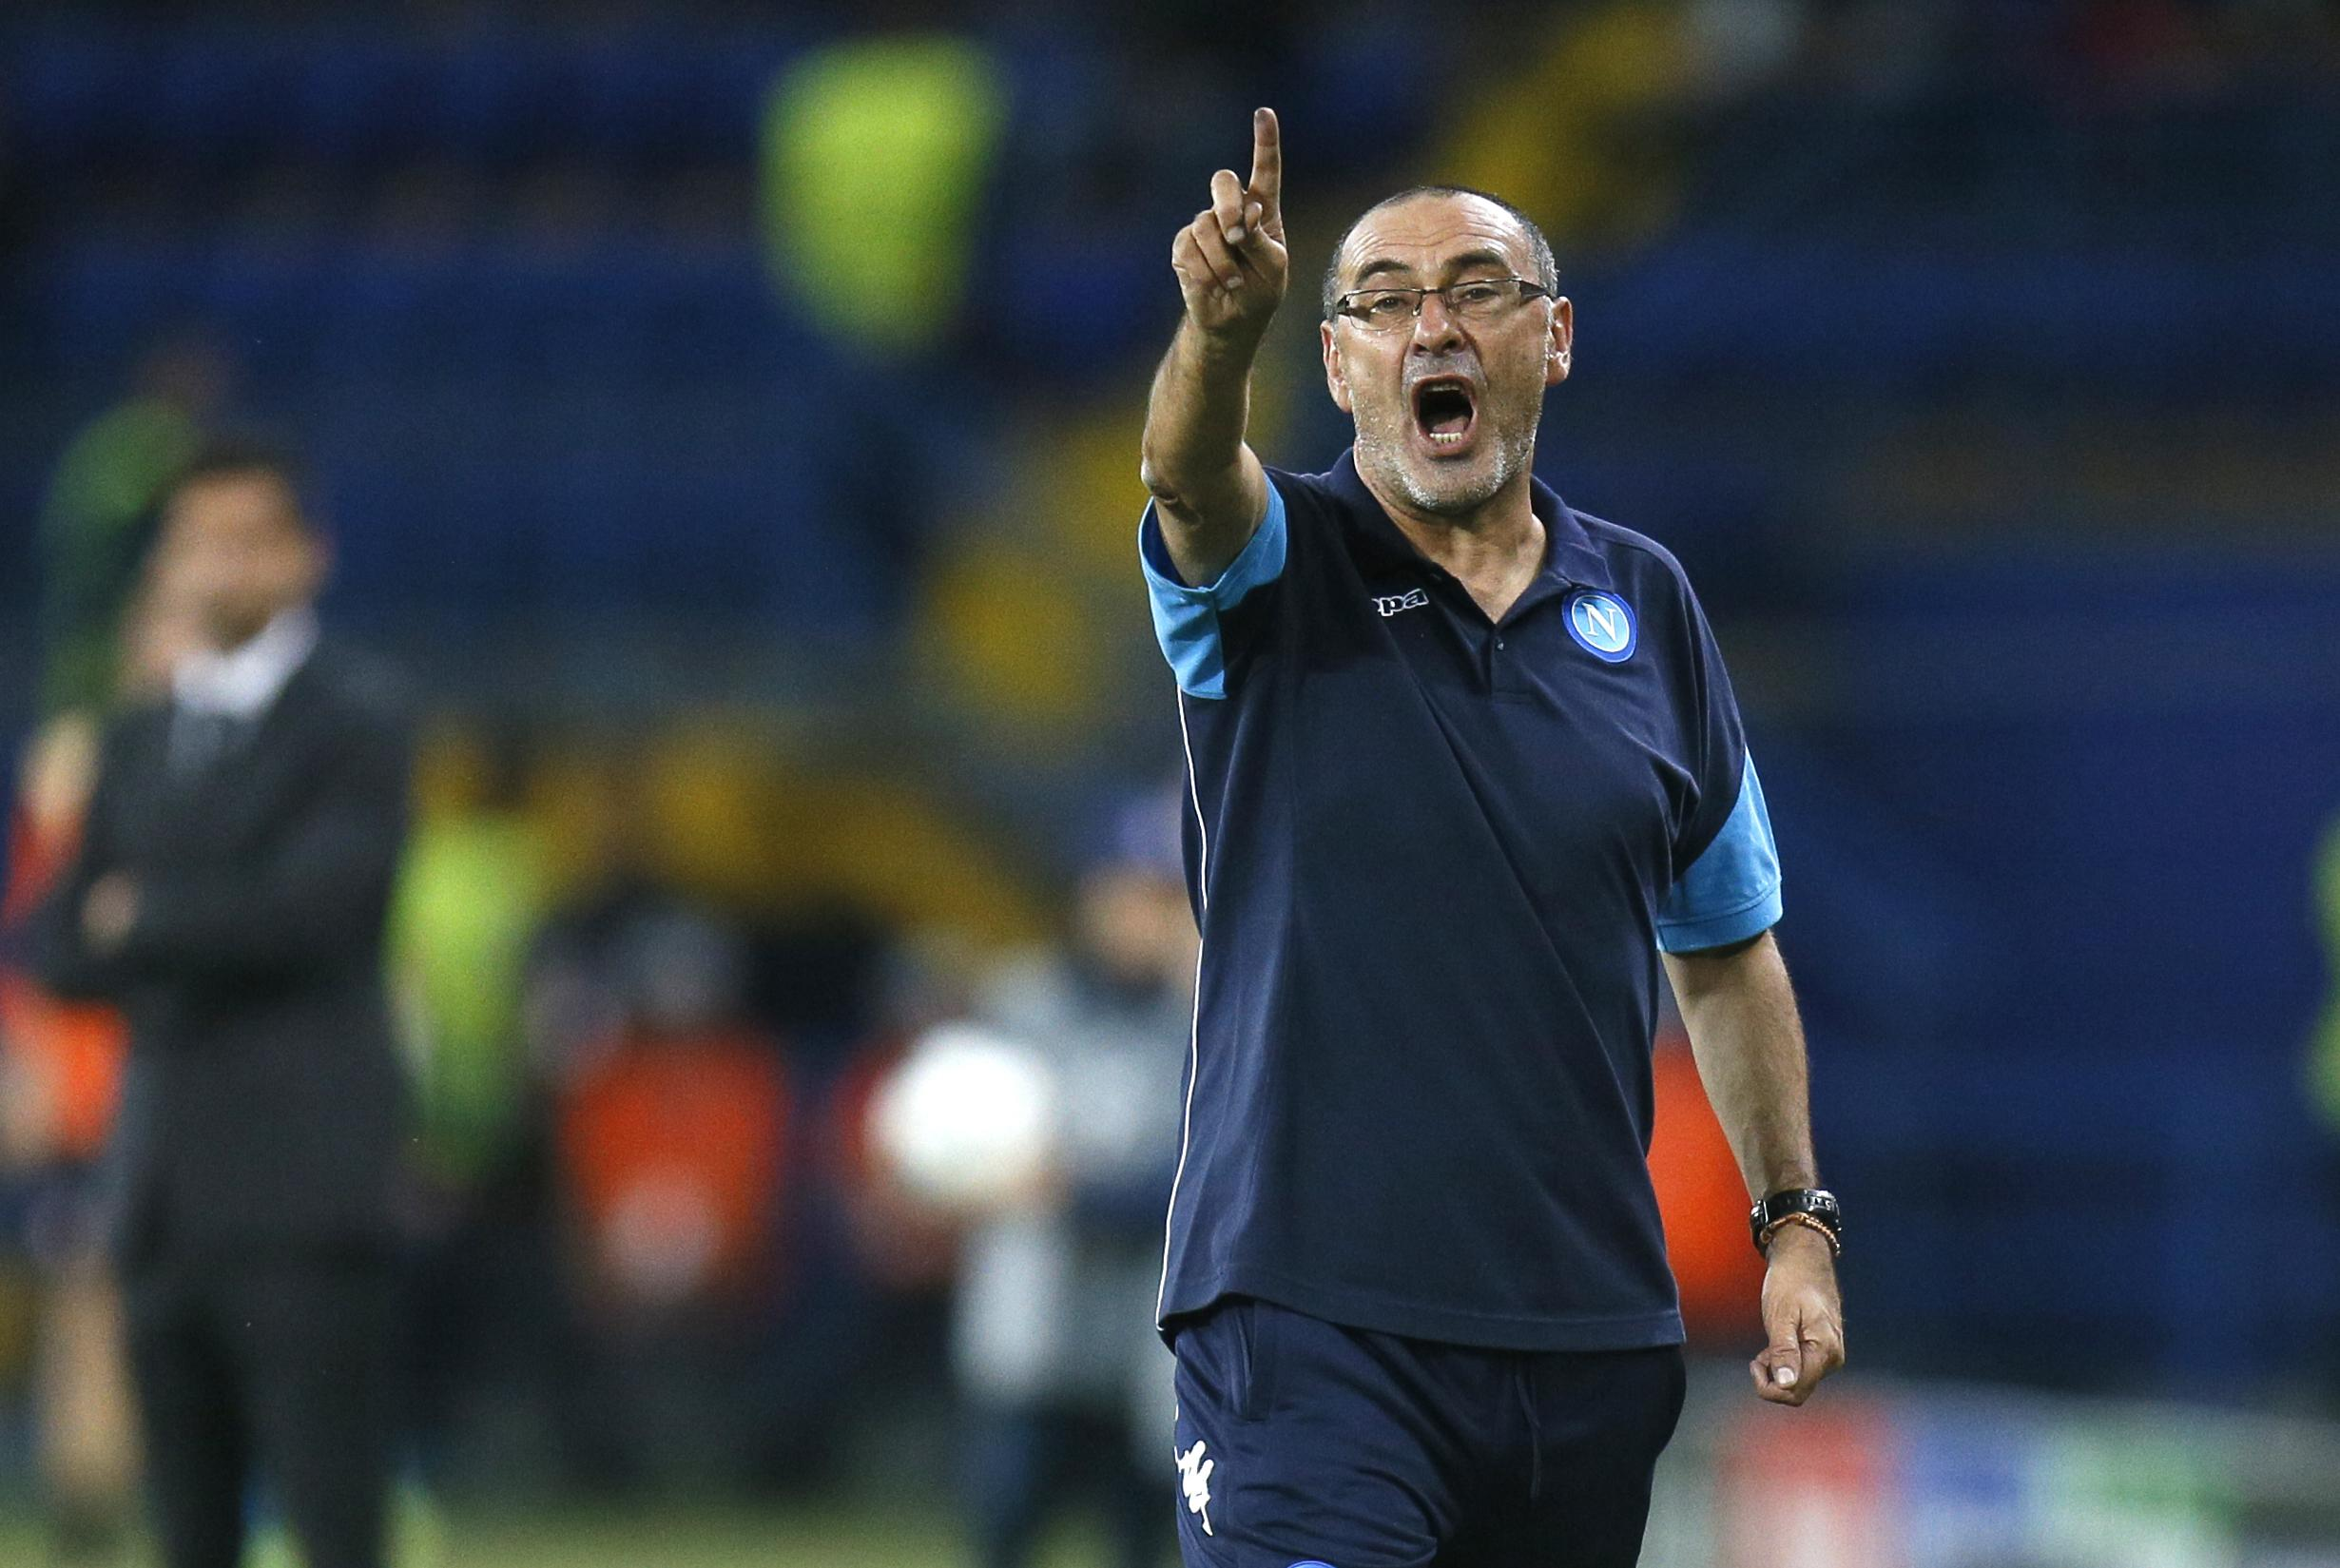 During his time at Napoli, Sarri switched between training pitches when on a winning run